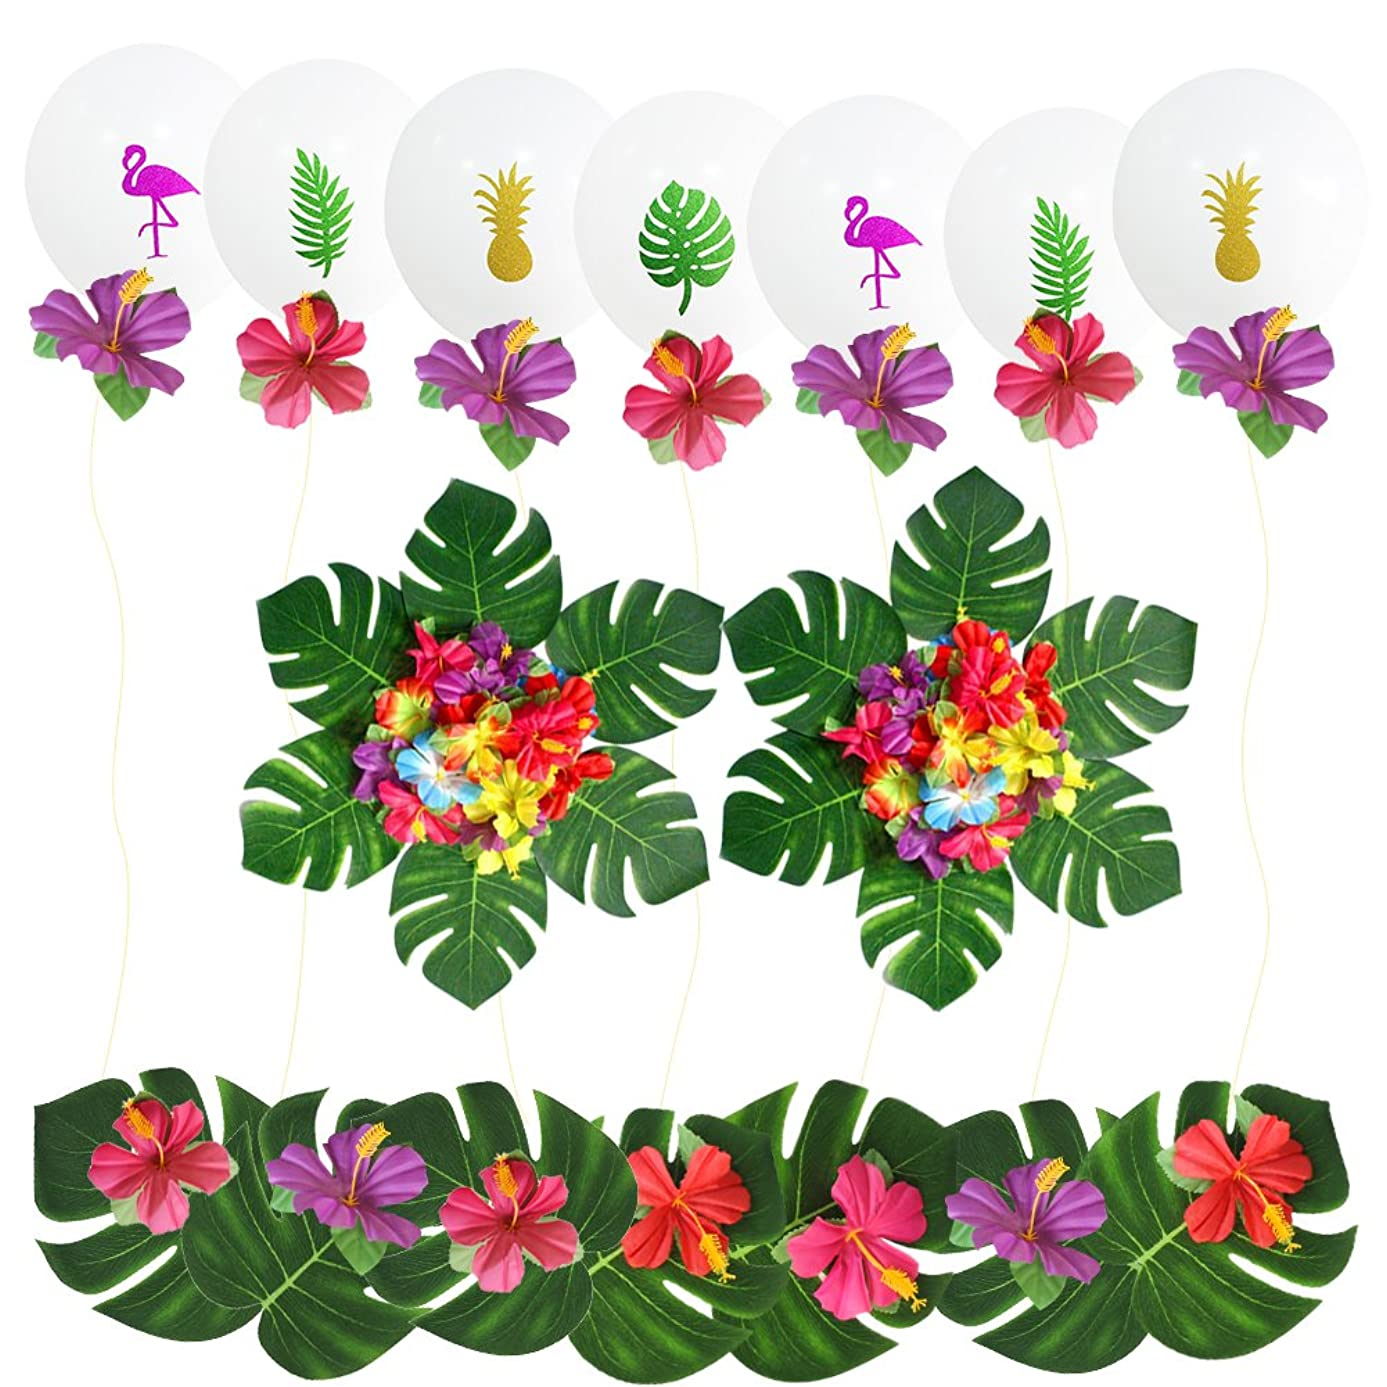 Hawaii Tropical Themed Party Supplies, 24 Pcs Hot Tropical Artificial Flowers and 30 Pcs Leaves Flamingo Latex Balloons Decoration Kit for Hawaii Luau Summer Beach Garland Birthday Party Supplies